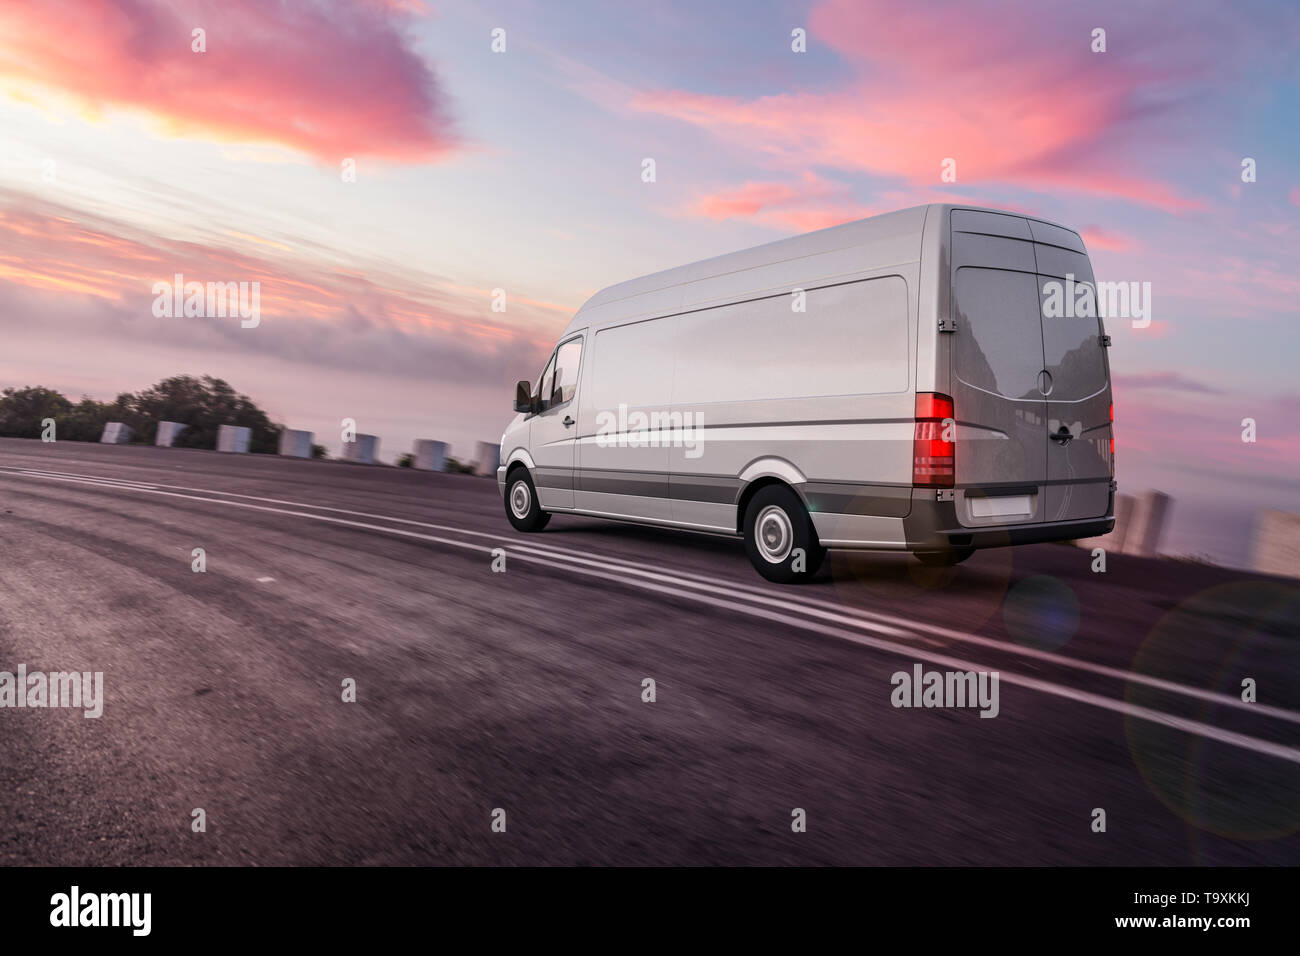 3d rendering of Van or truck of freight forwarder or shipping company on the road quickly delivers packages and deliveries overnight Stock Photo